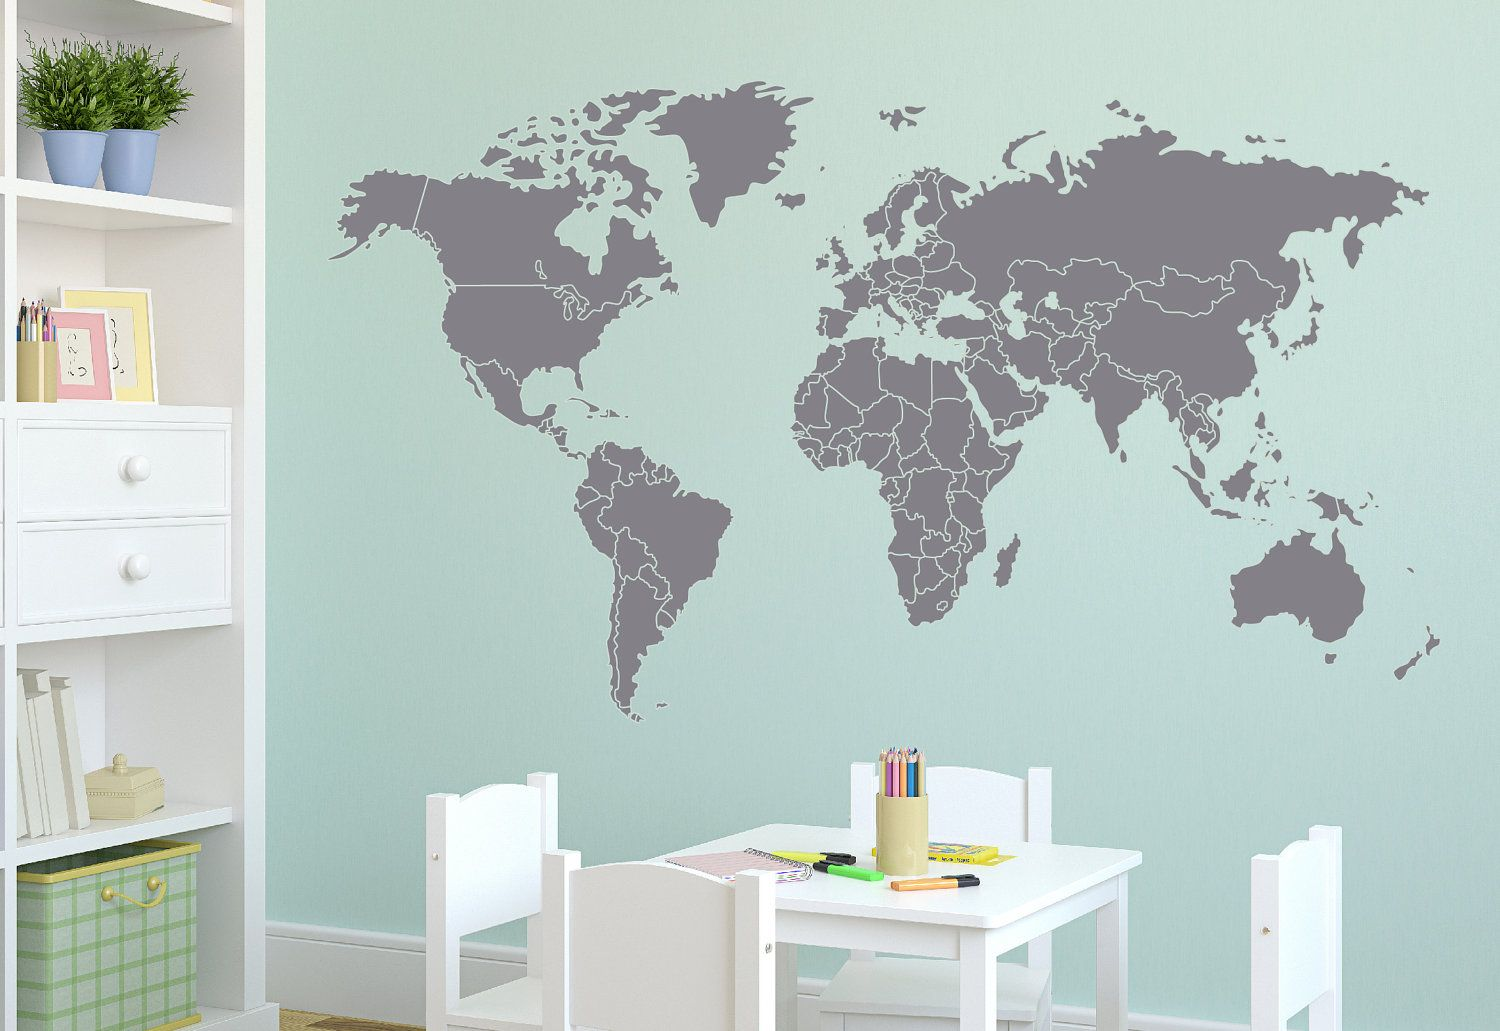 Ikea Couch Bett Huffaker World Map Wall Decal Maps Globes Idée Déco Bureau Deco